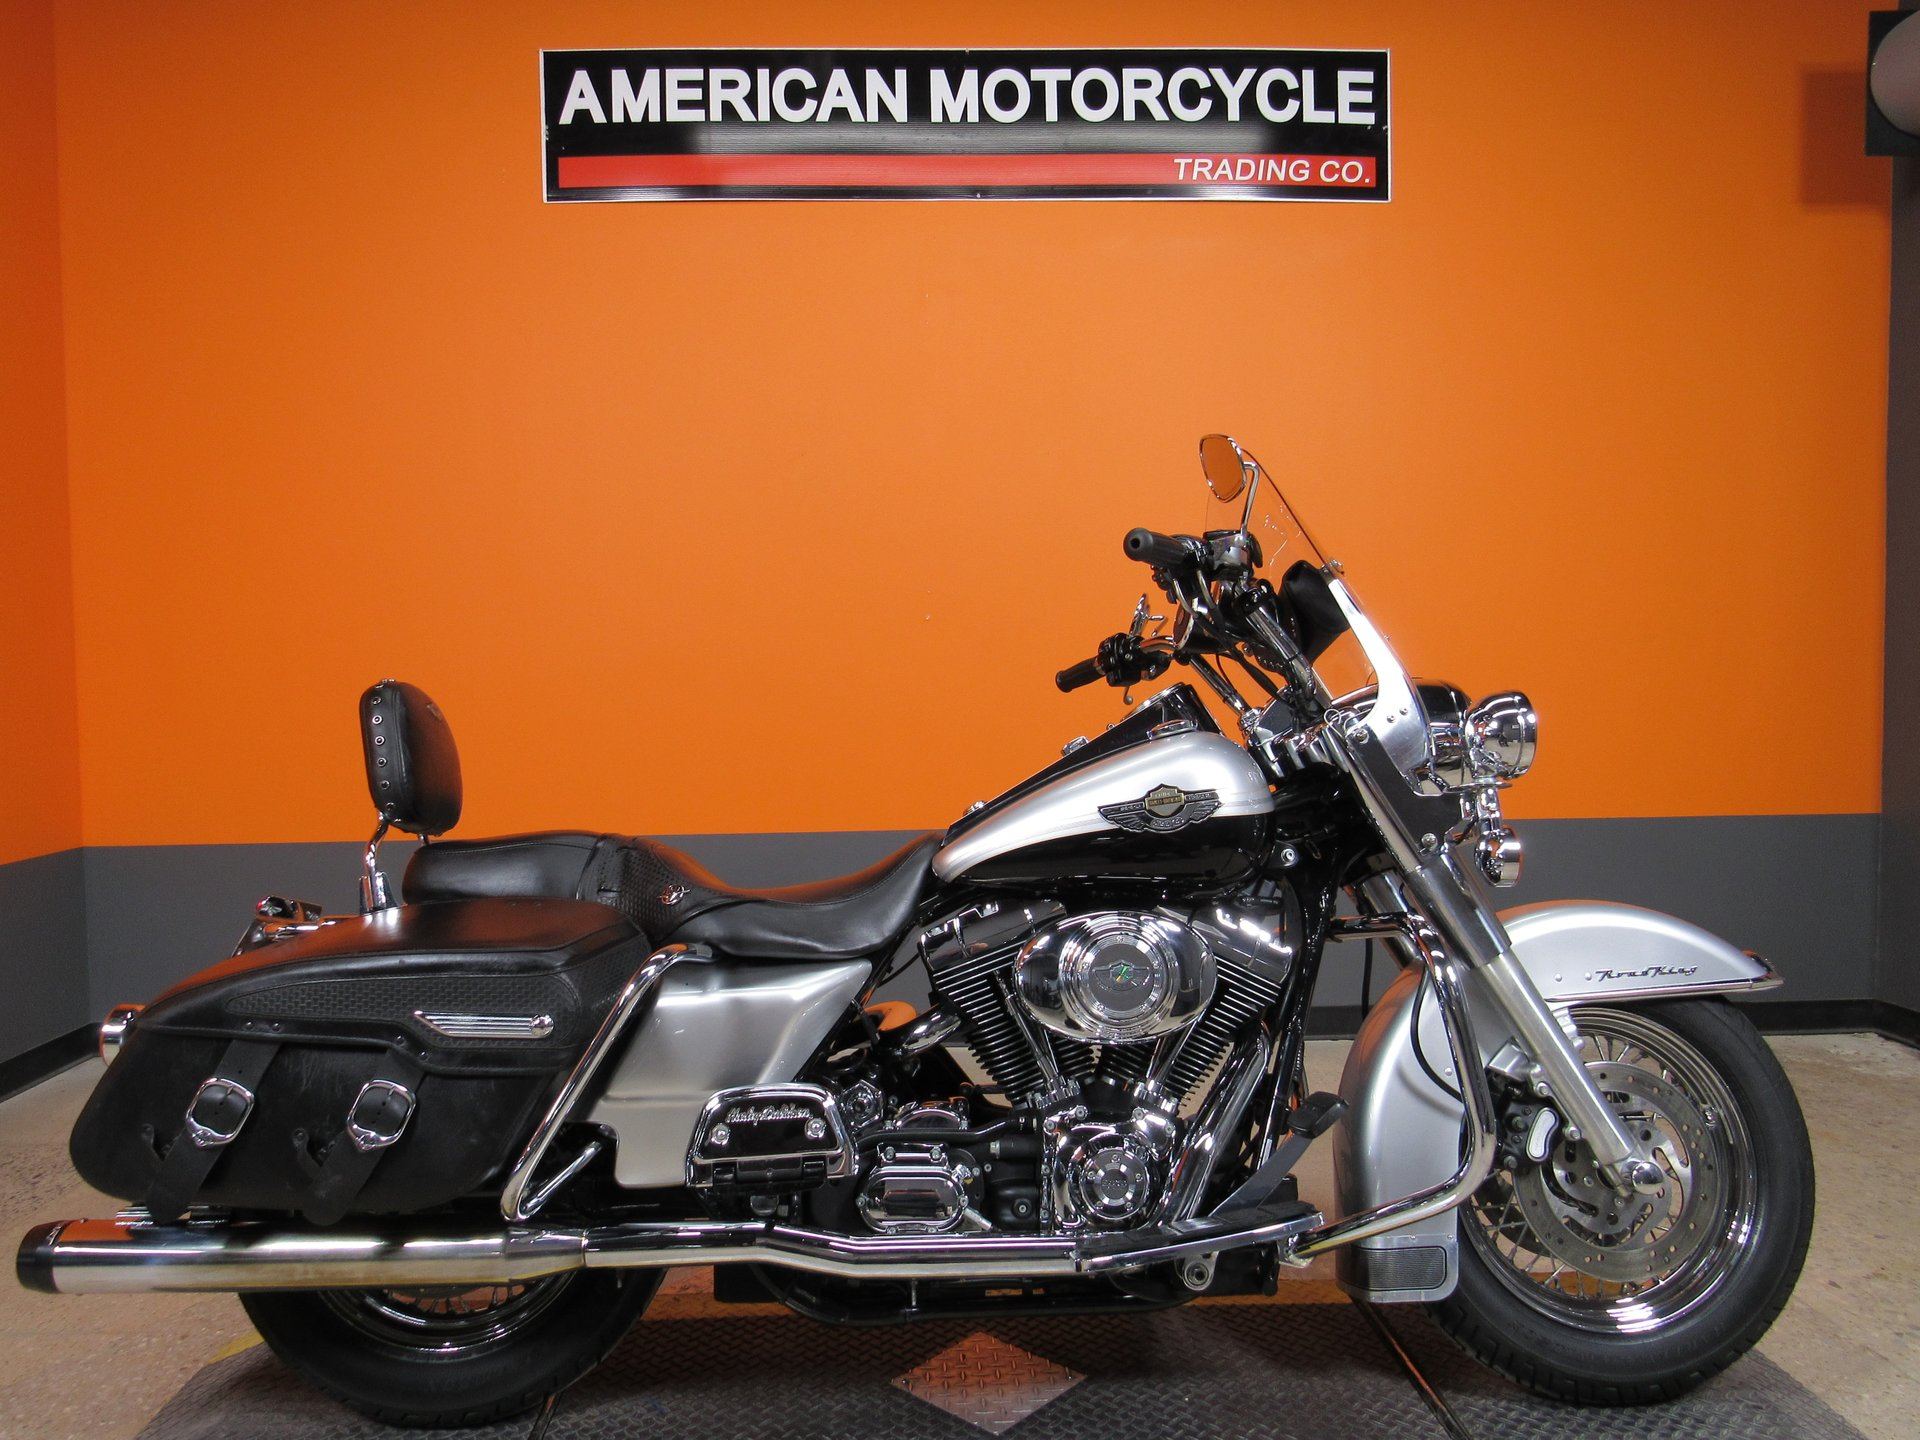 2003 harley davidson road king classic flhrci 100th anniversary